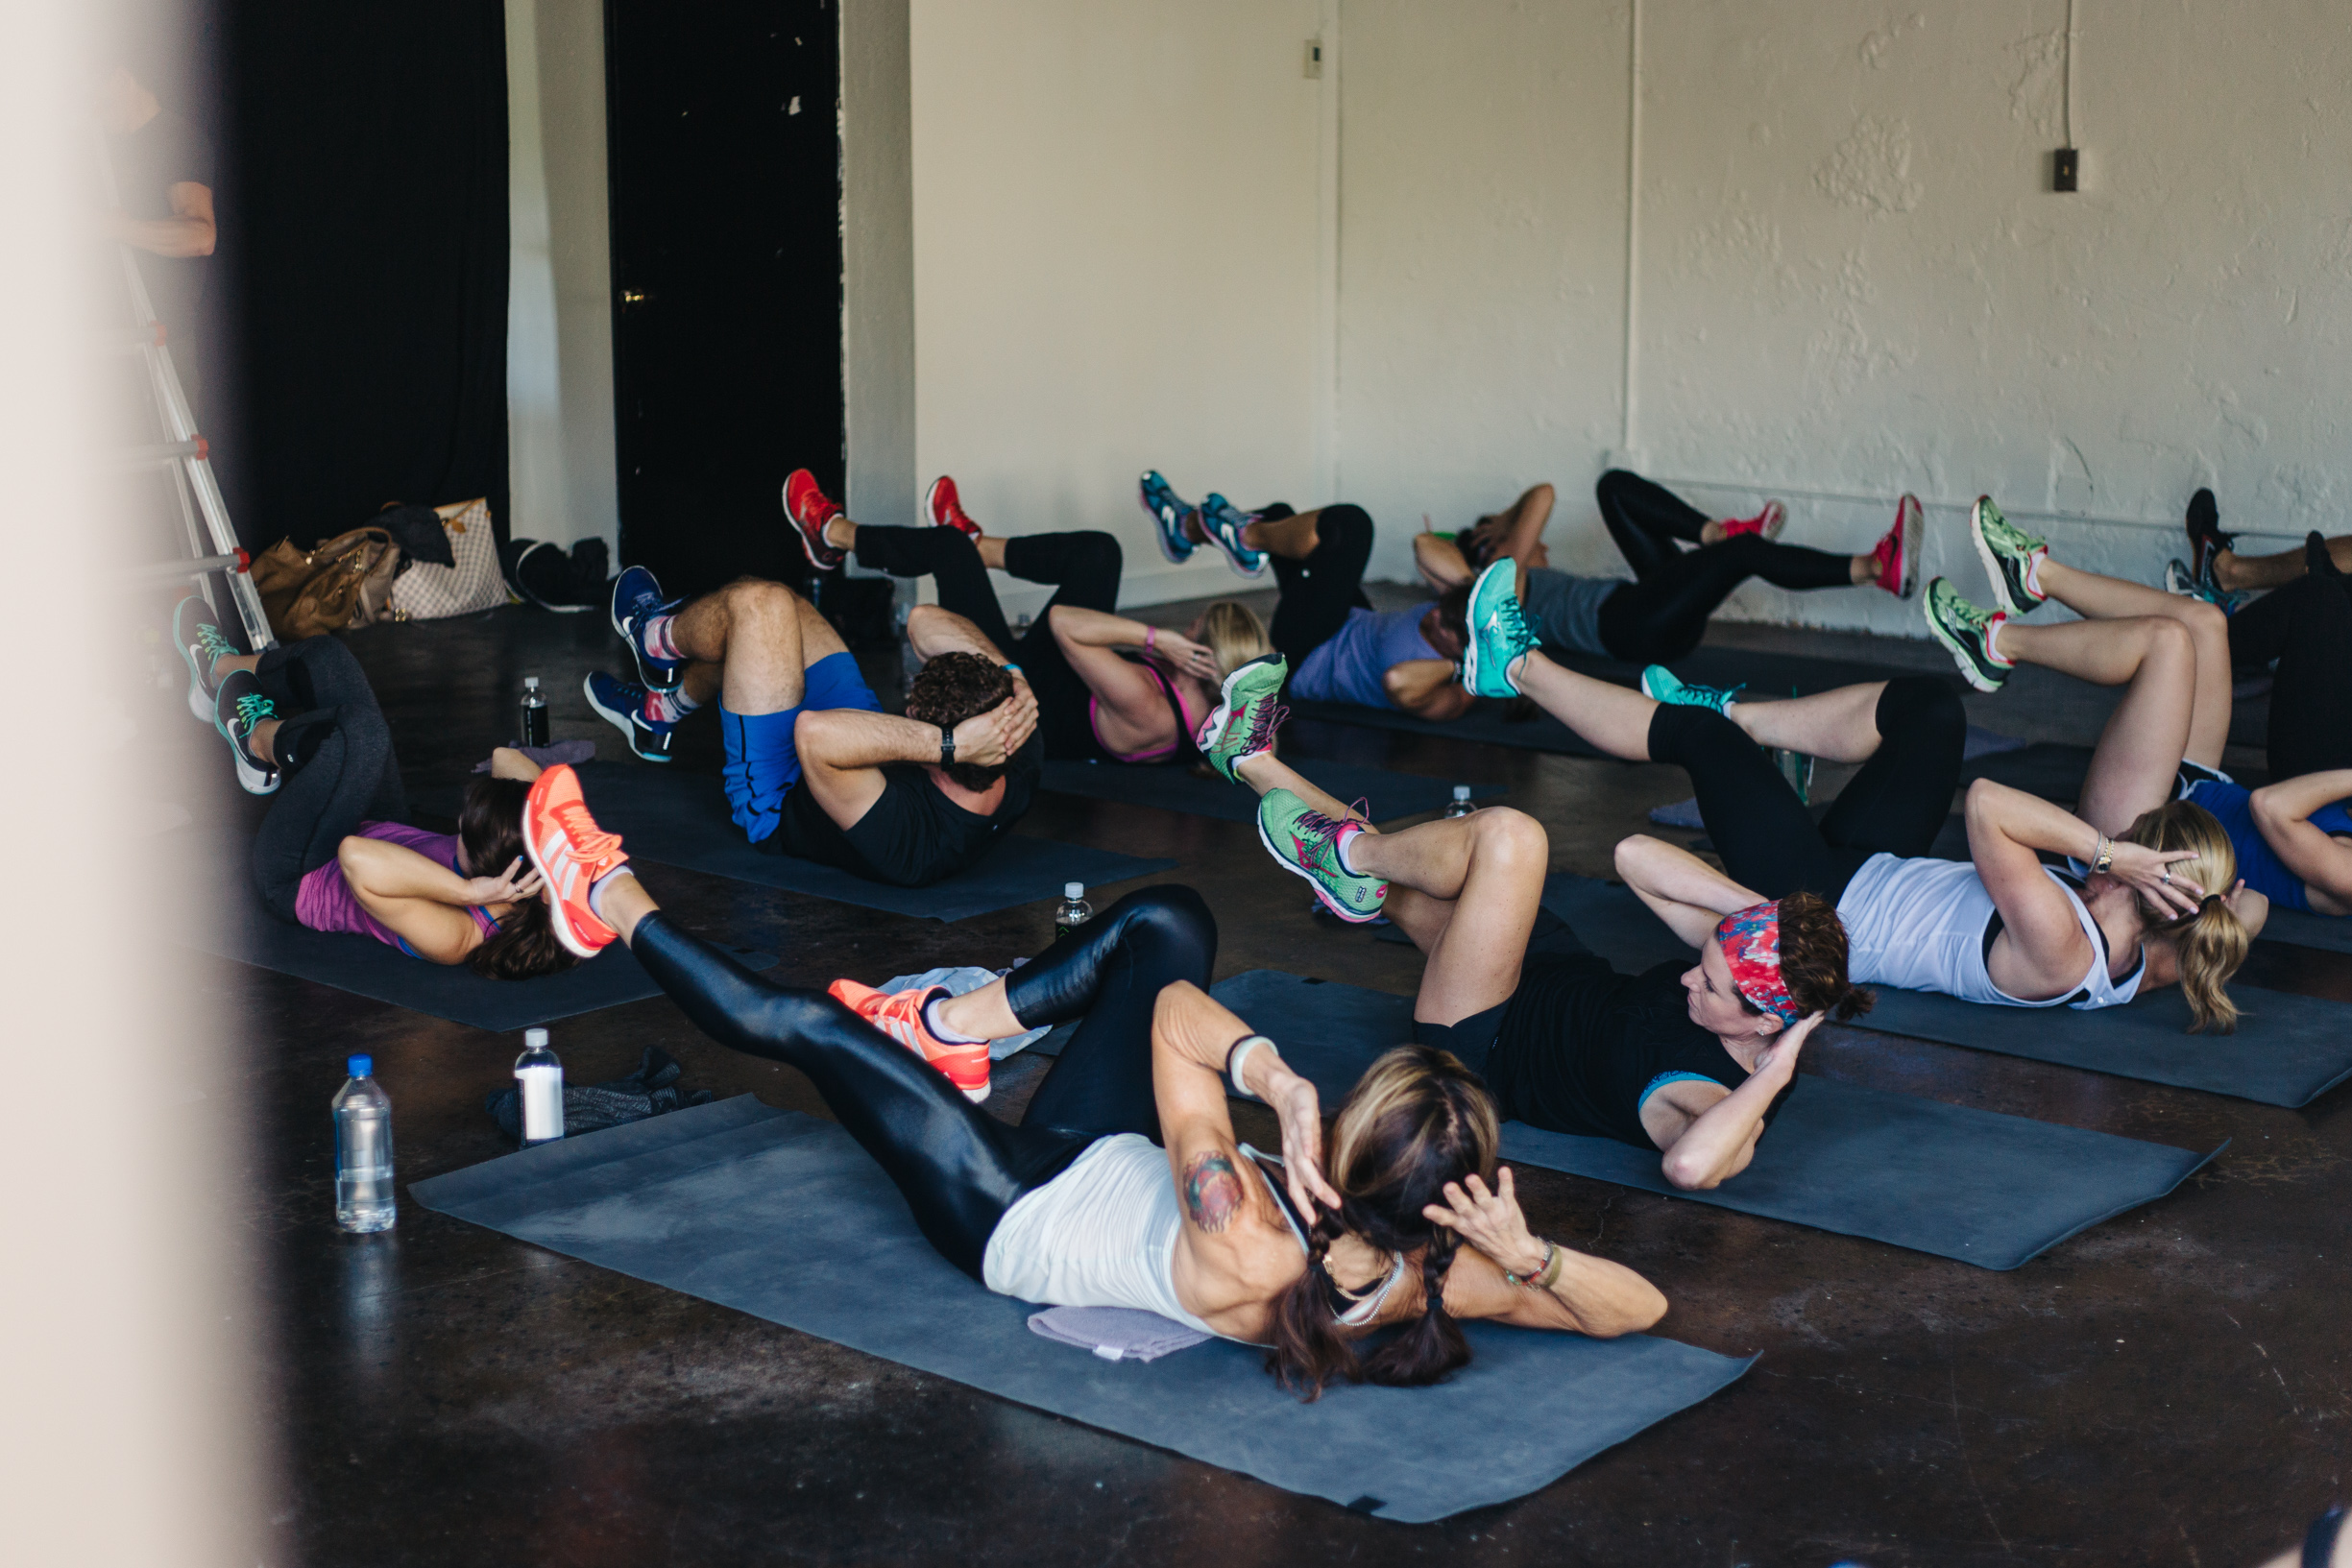 Summer is here and we want you to look and feel strong and confident all season long!  Take 20 classes July 5th-August 5th & receive 20% off your next package!